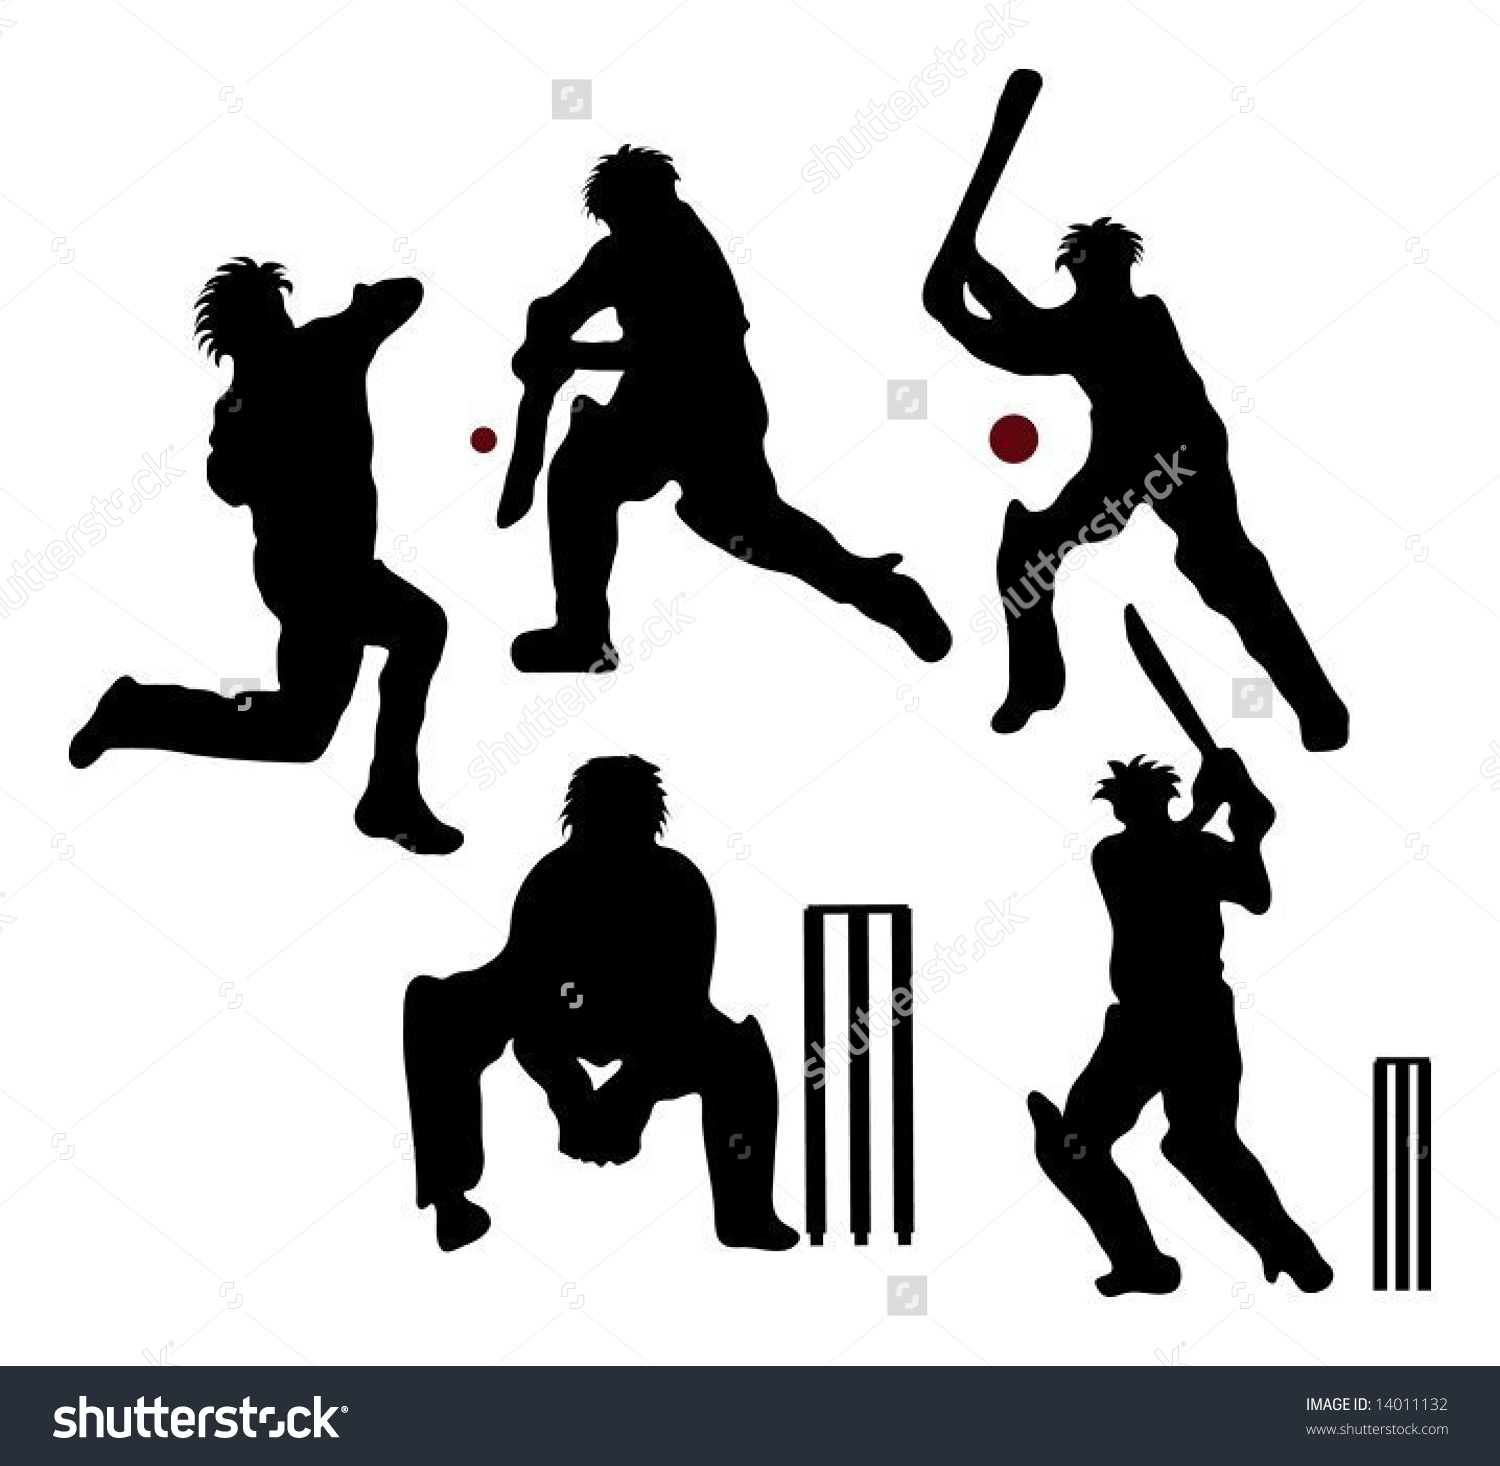 Cricket Silhouettes Stock Vector 14011132.